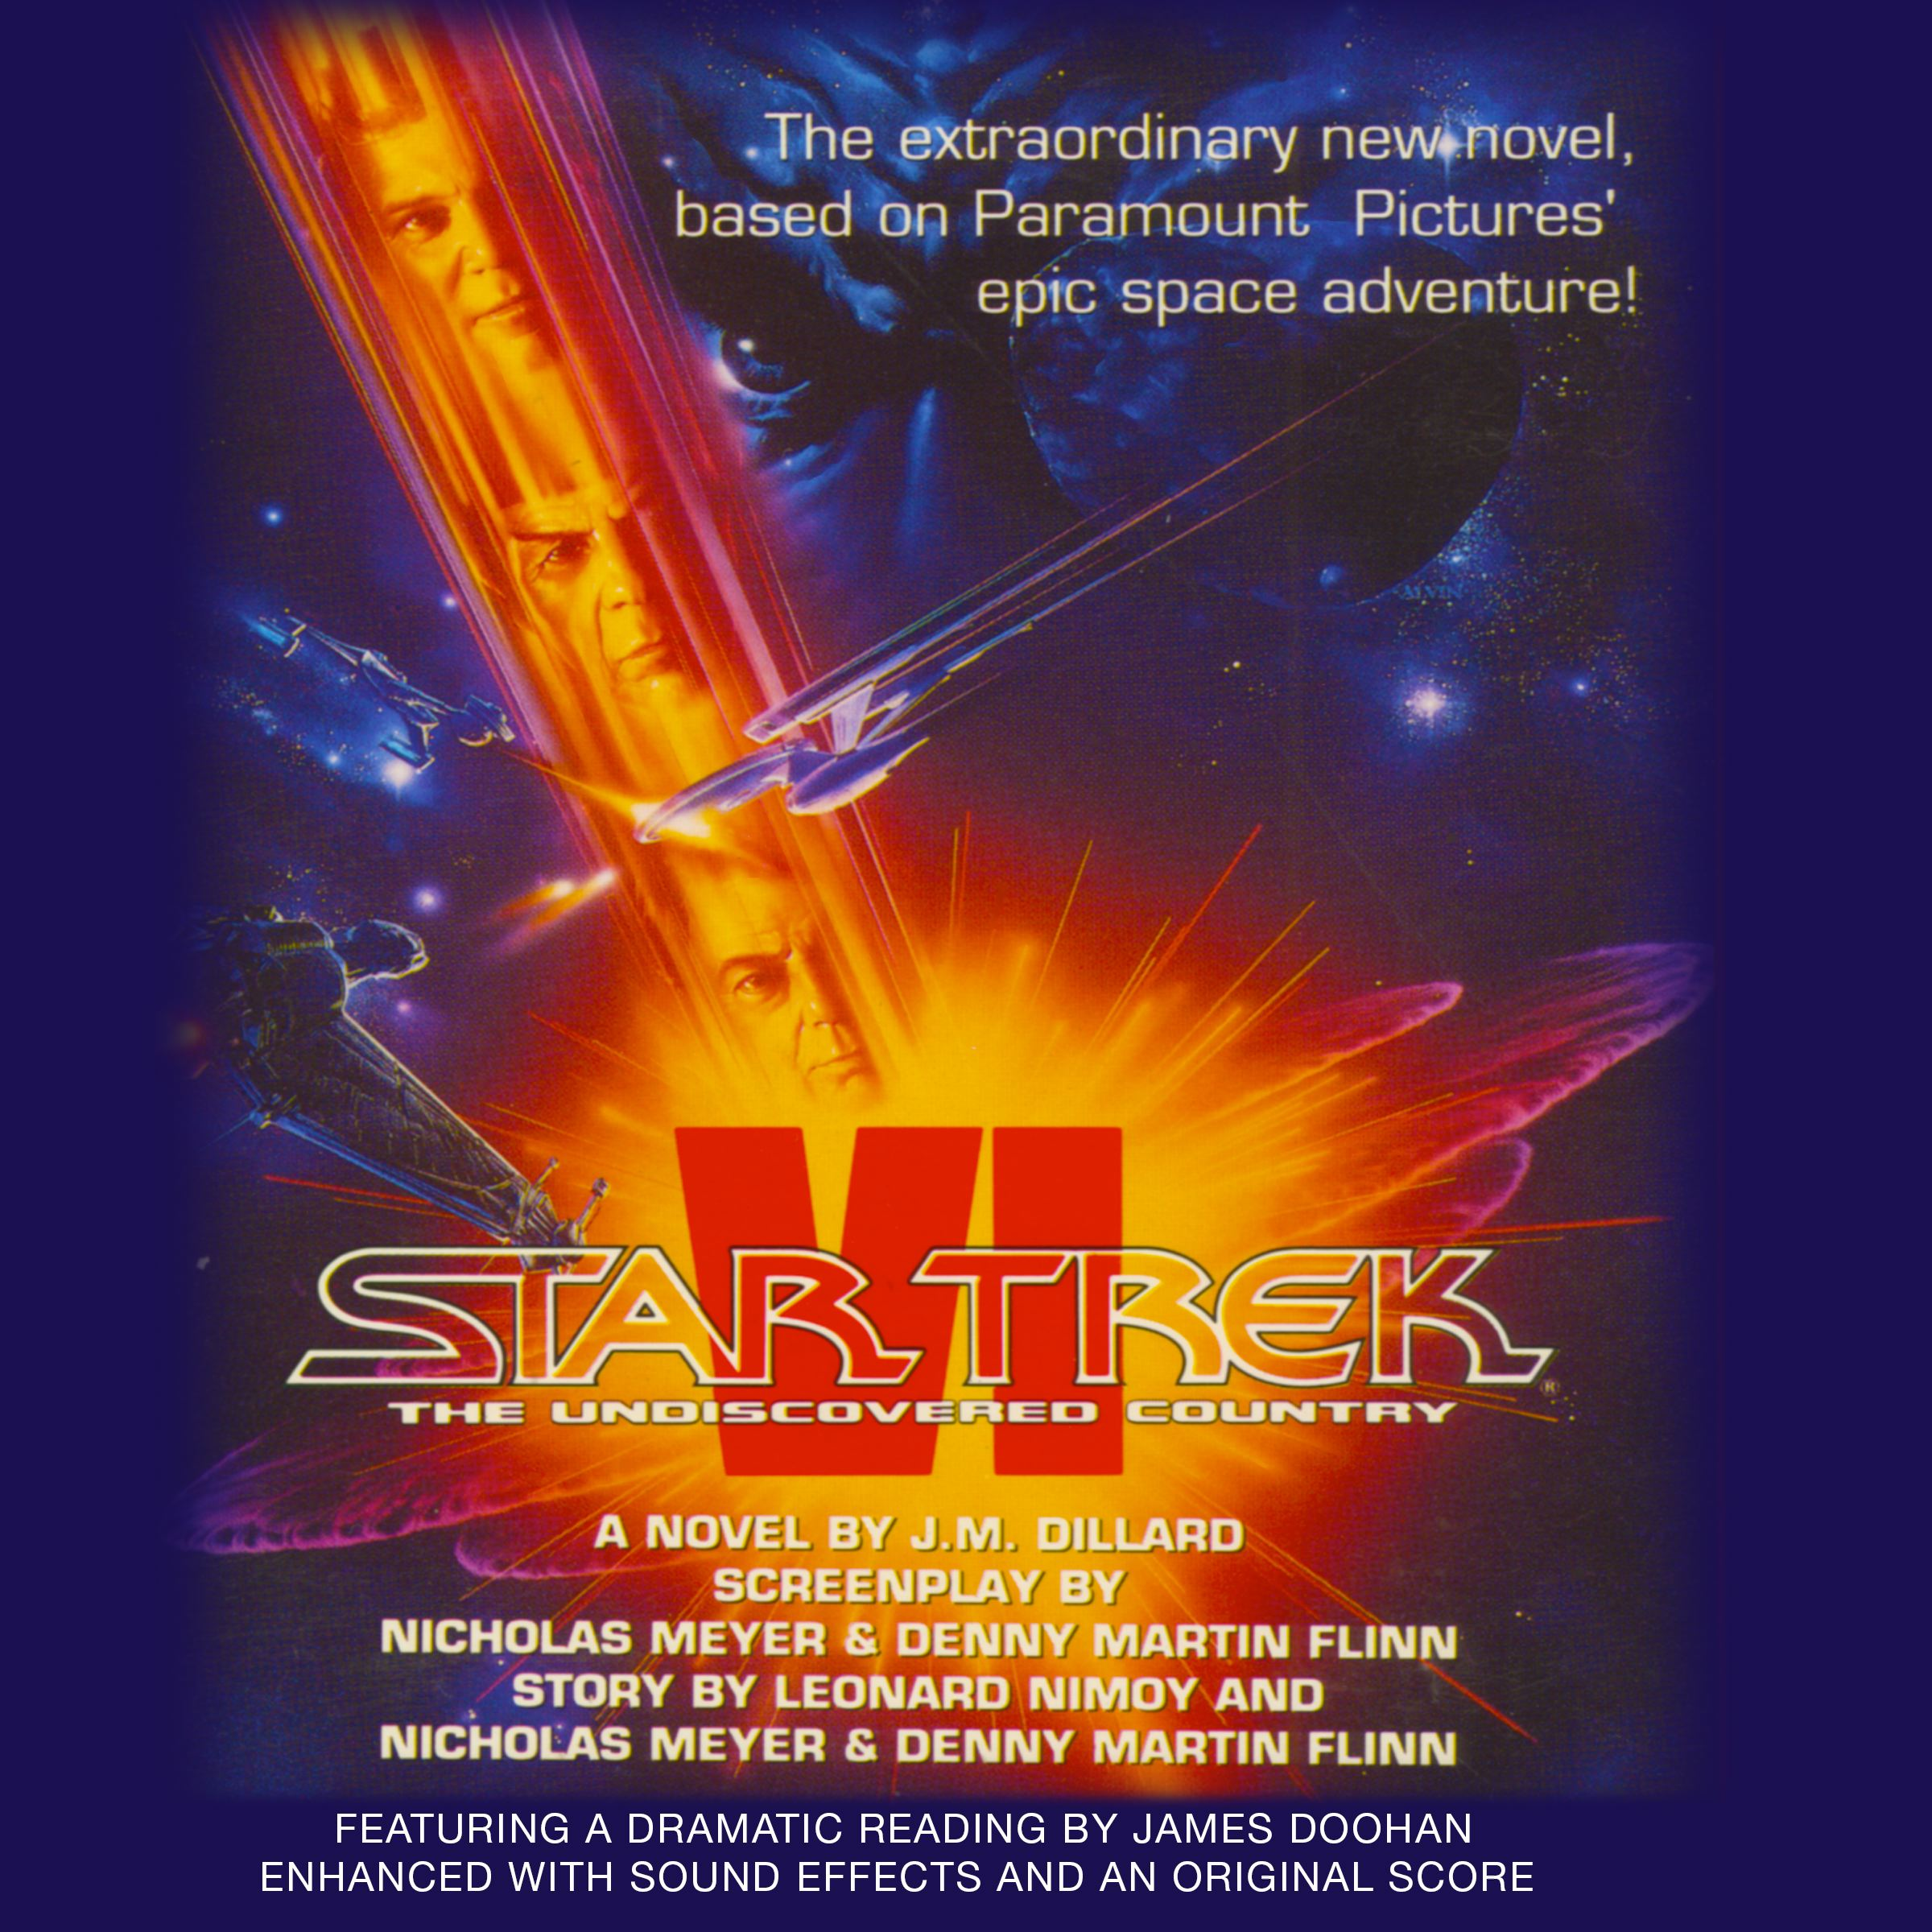 Star-trek-vi-the-undiscovered-country-9781442368286_hr